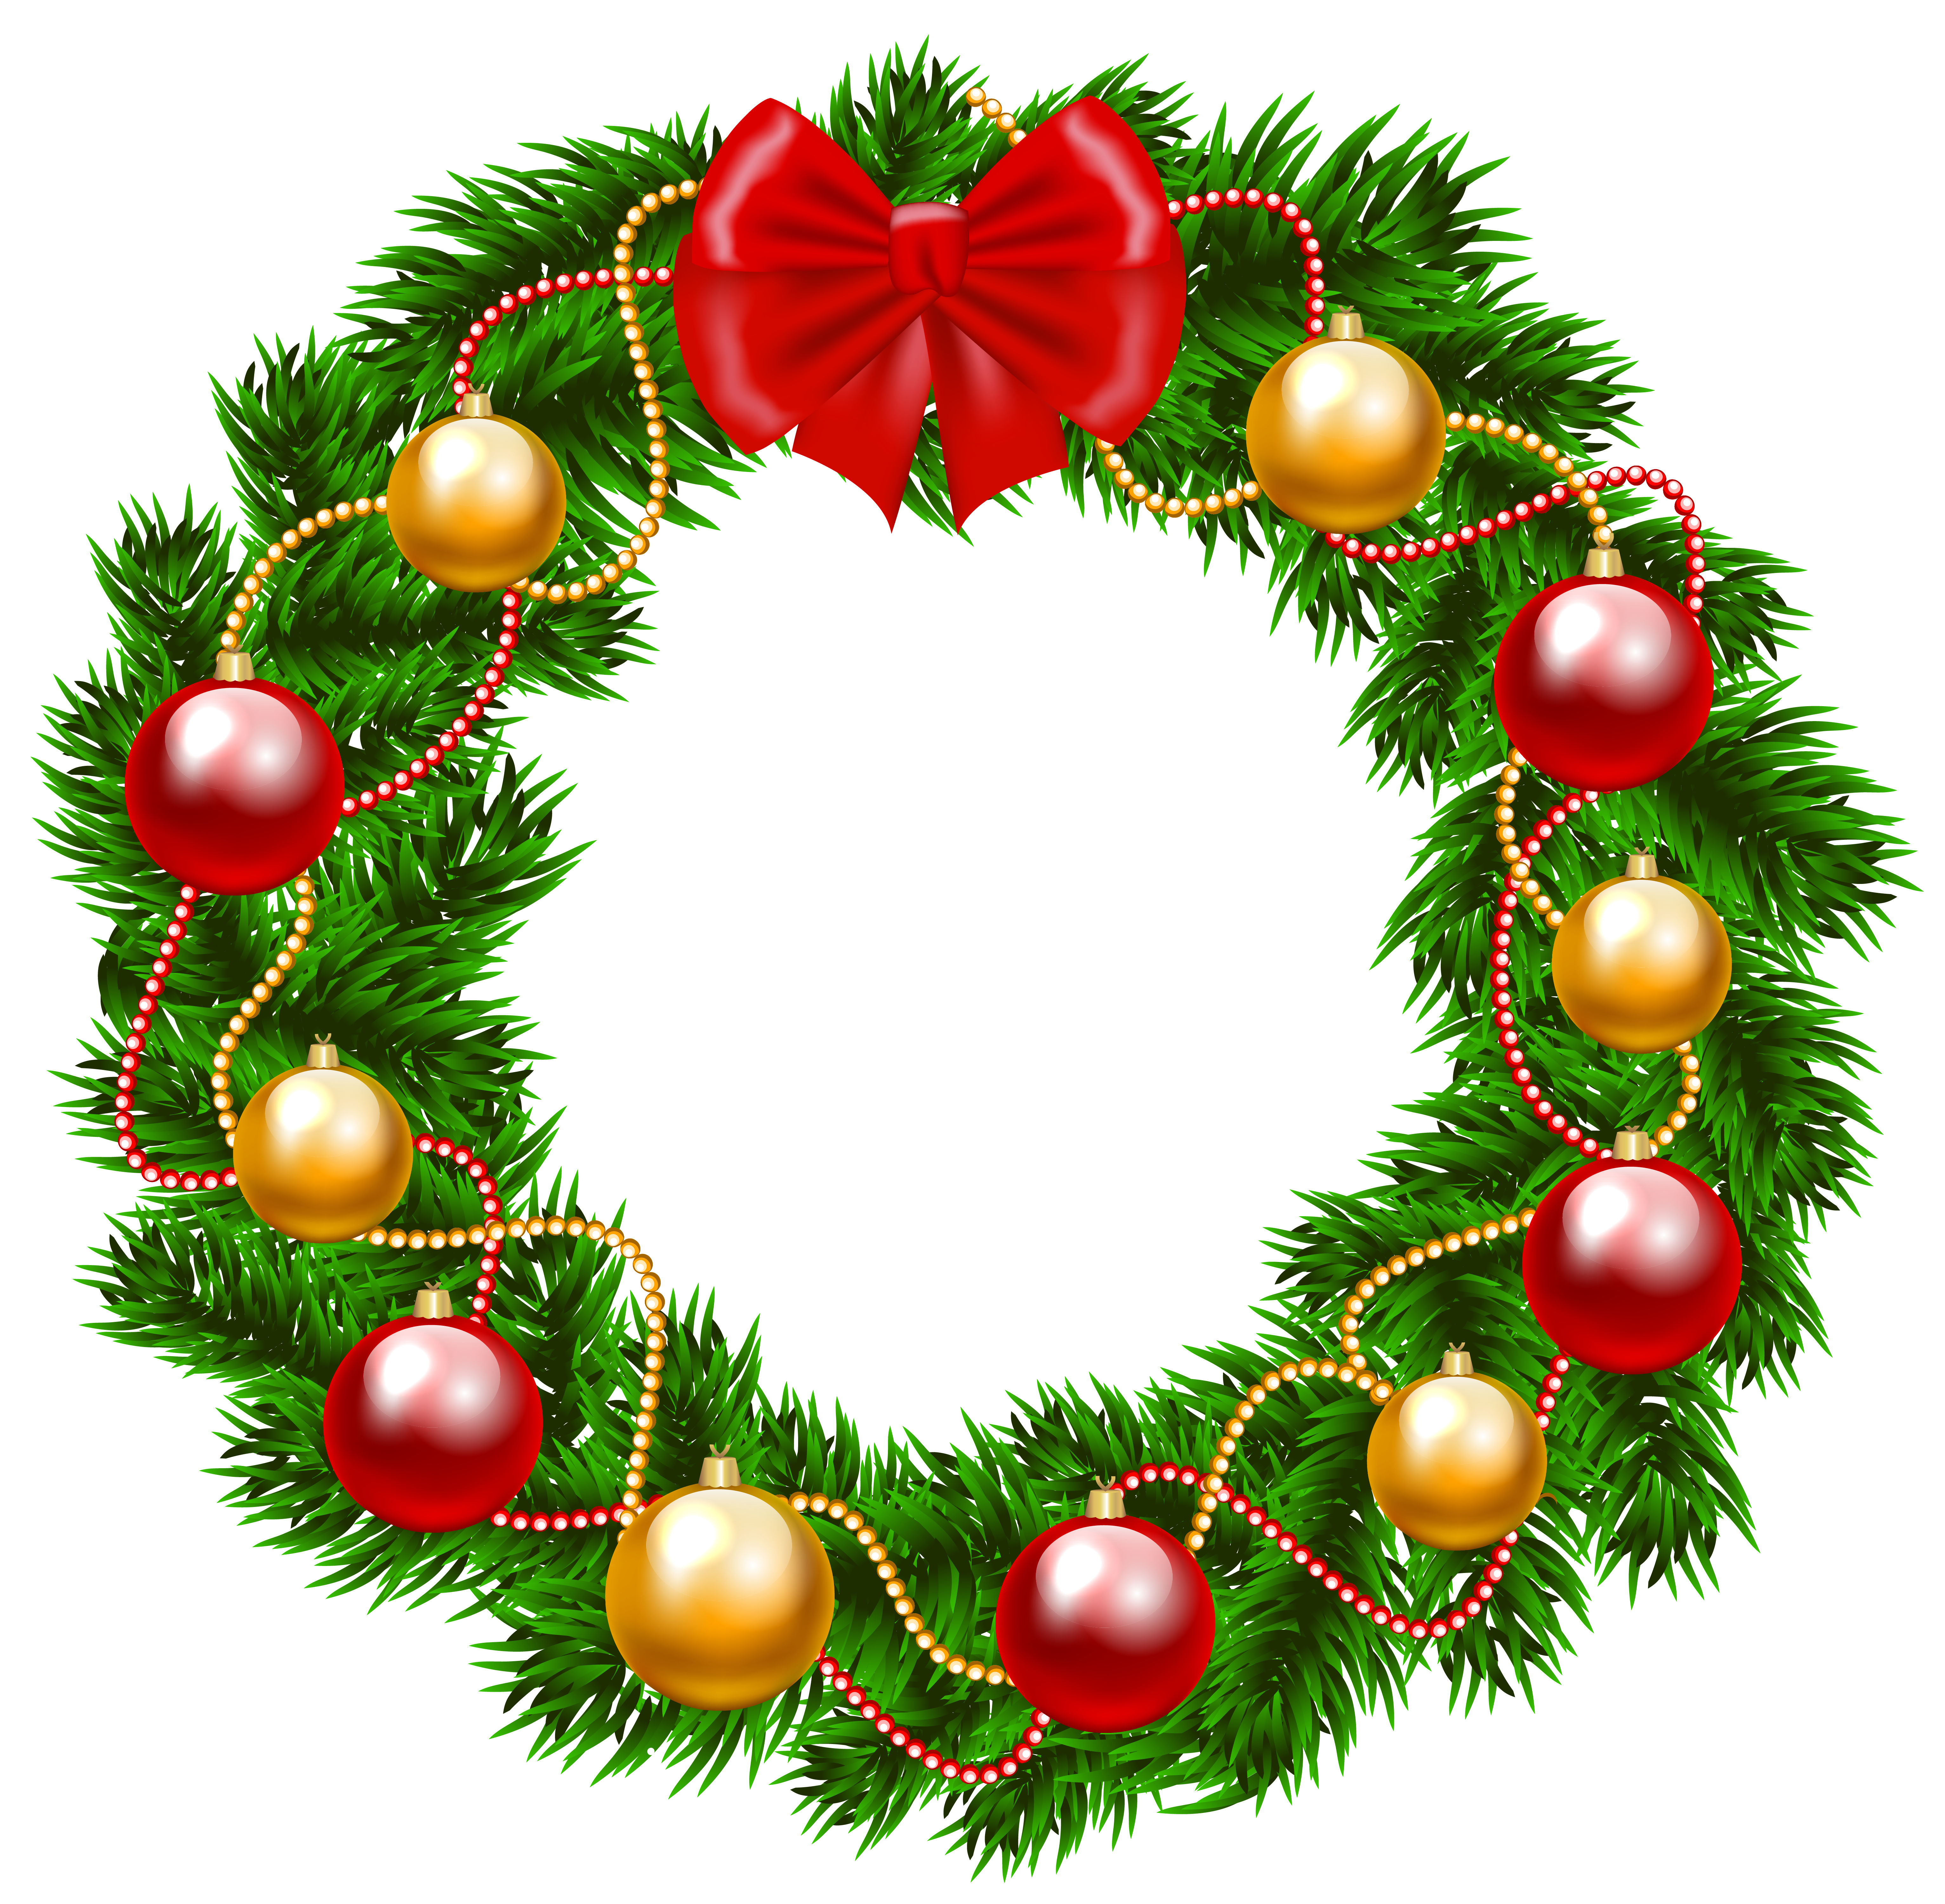 6129x5999 Christmas Wreath Png Clipart Imageu200b Gallery Yopriceville